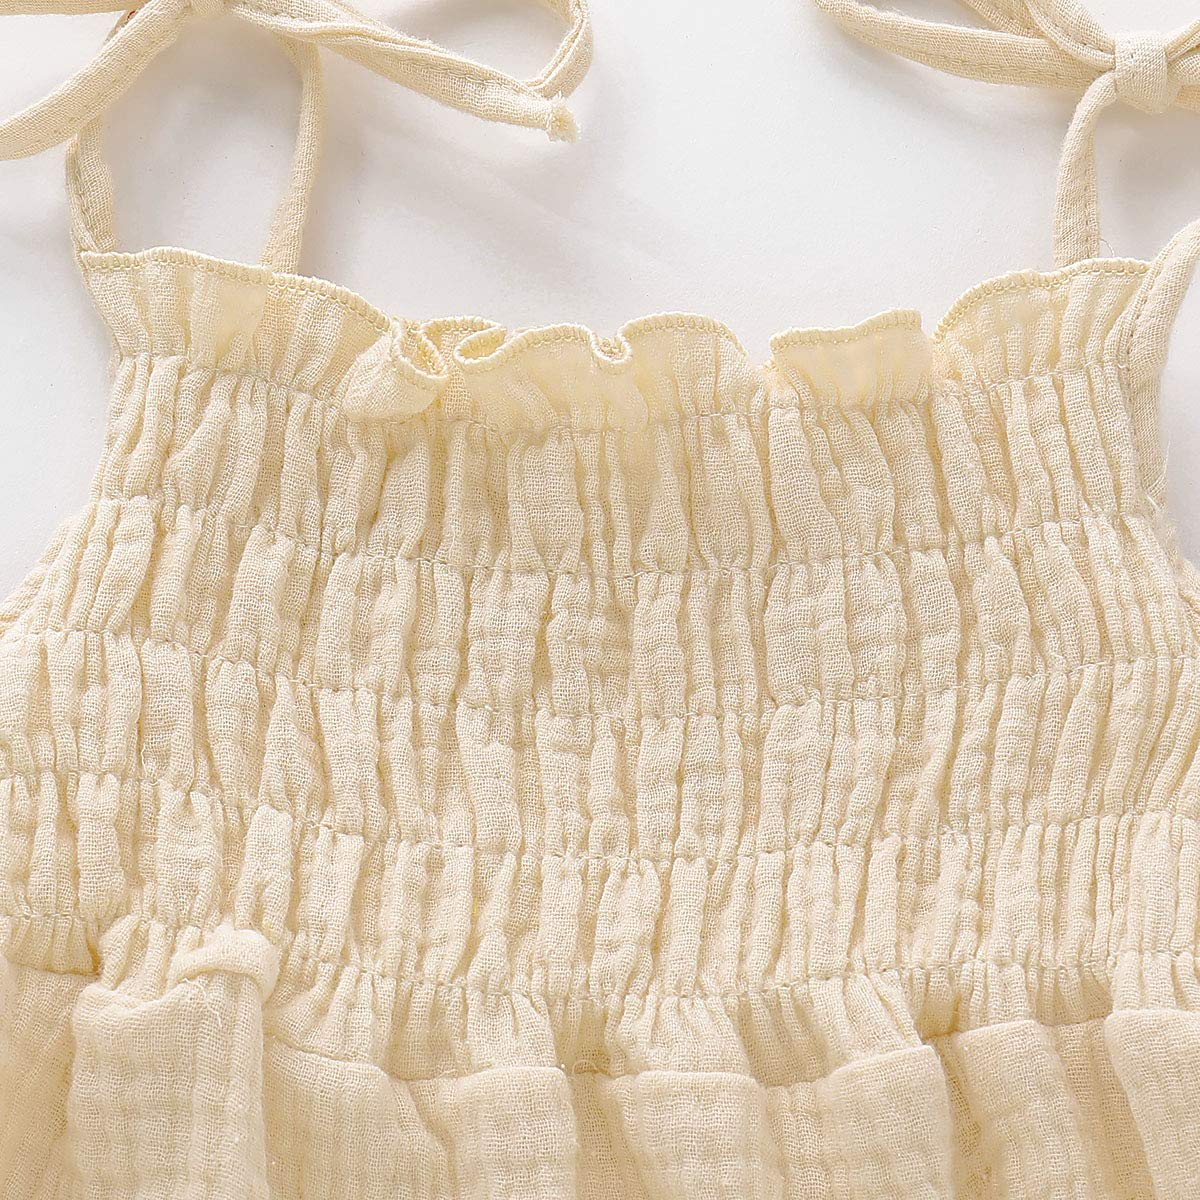 Newborn Infant Baby Girl Strap Cotton Linen Romper Sleeveless Halter Solid Color Bodysuit Outfits Summer Clothes